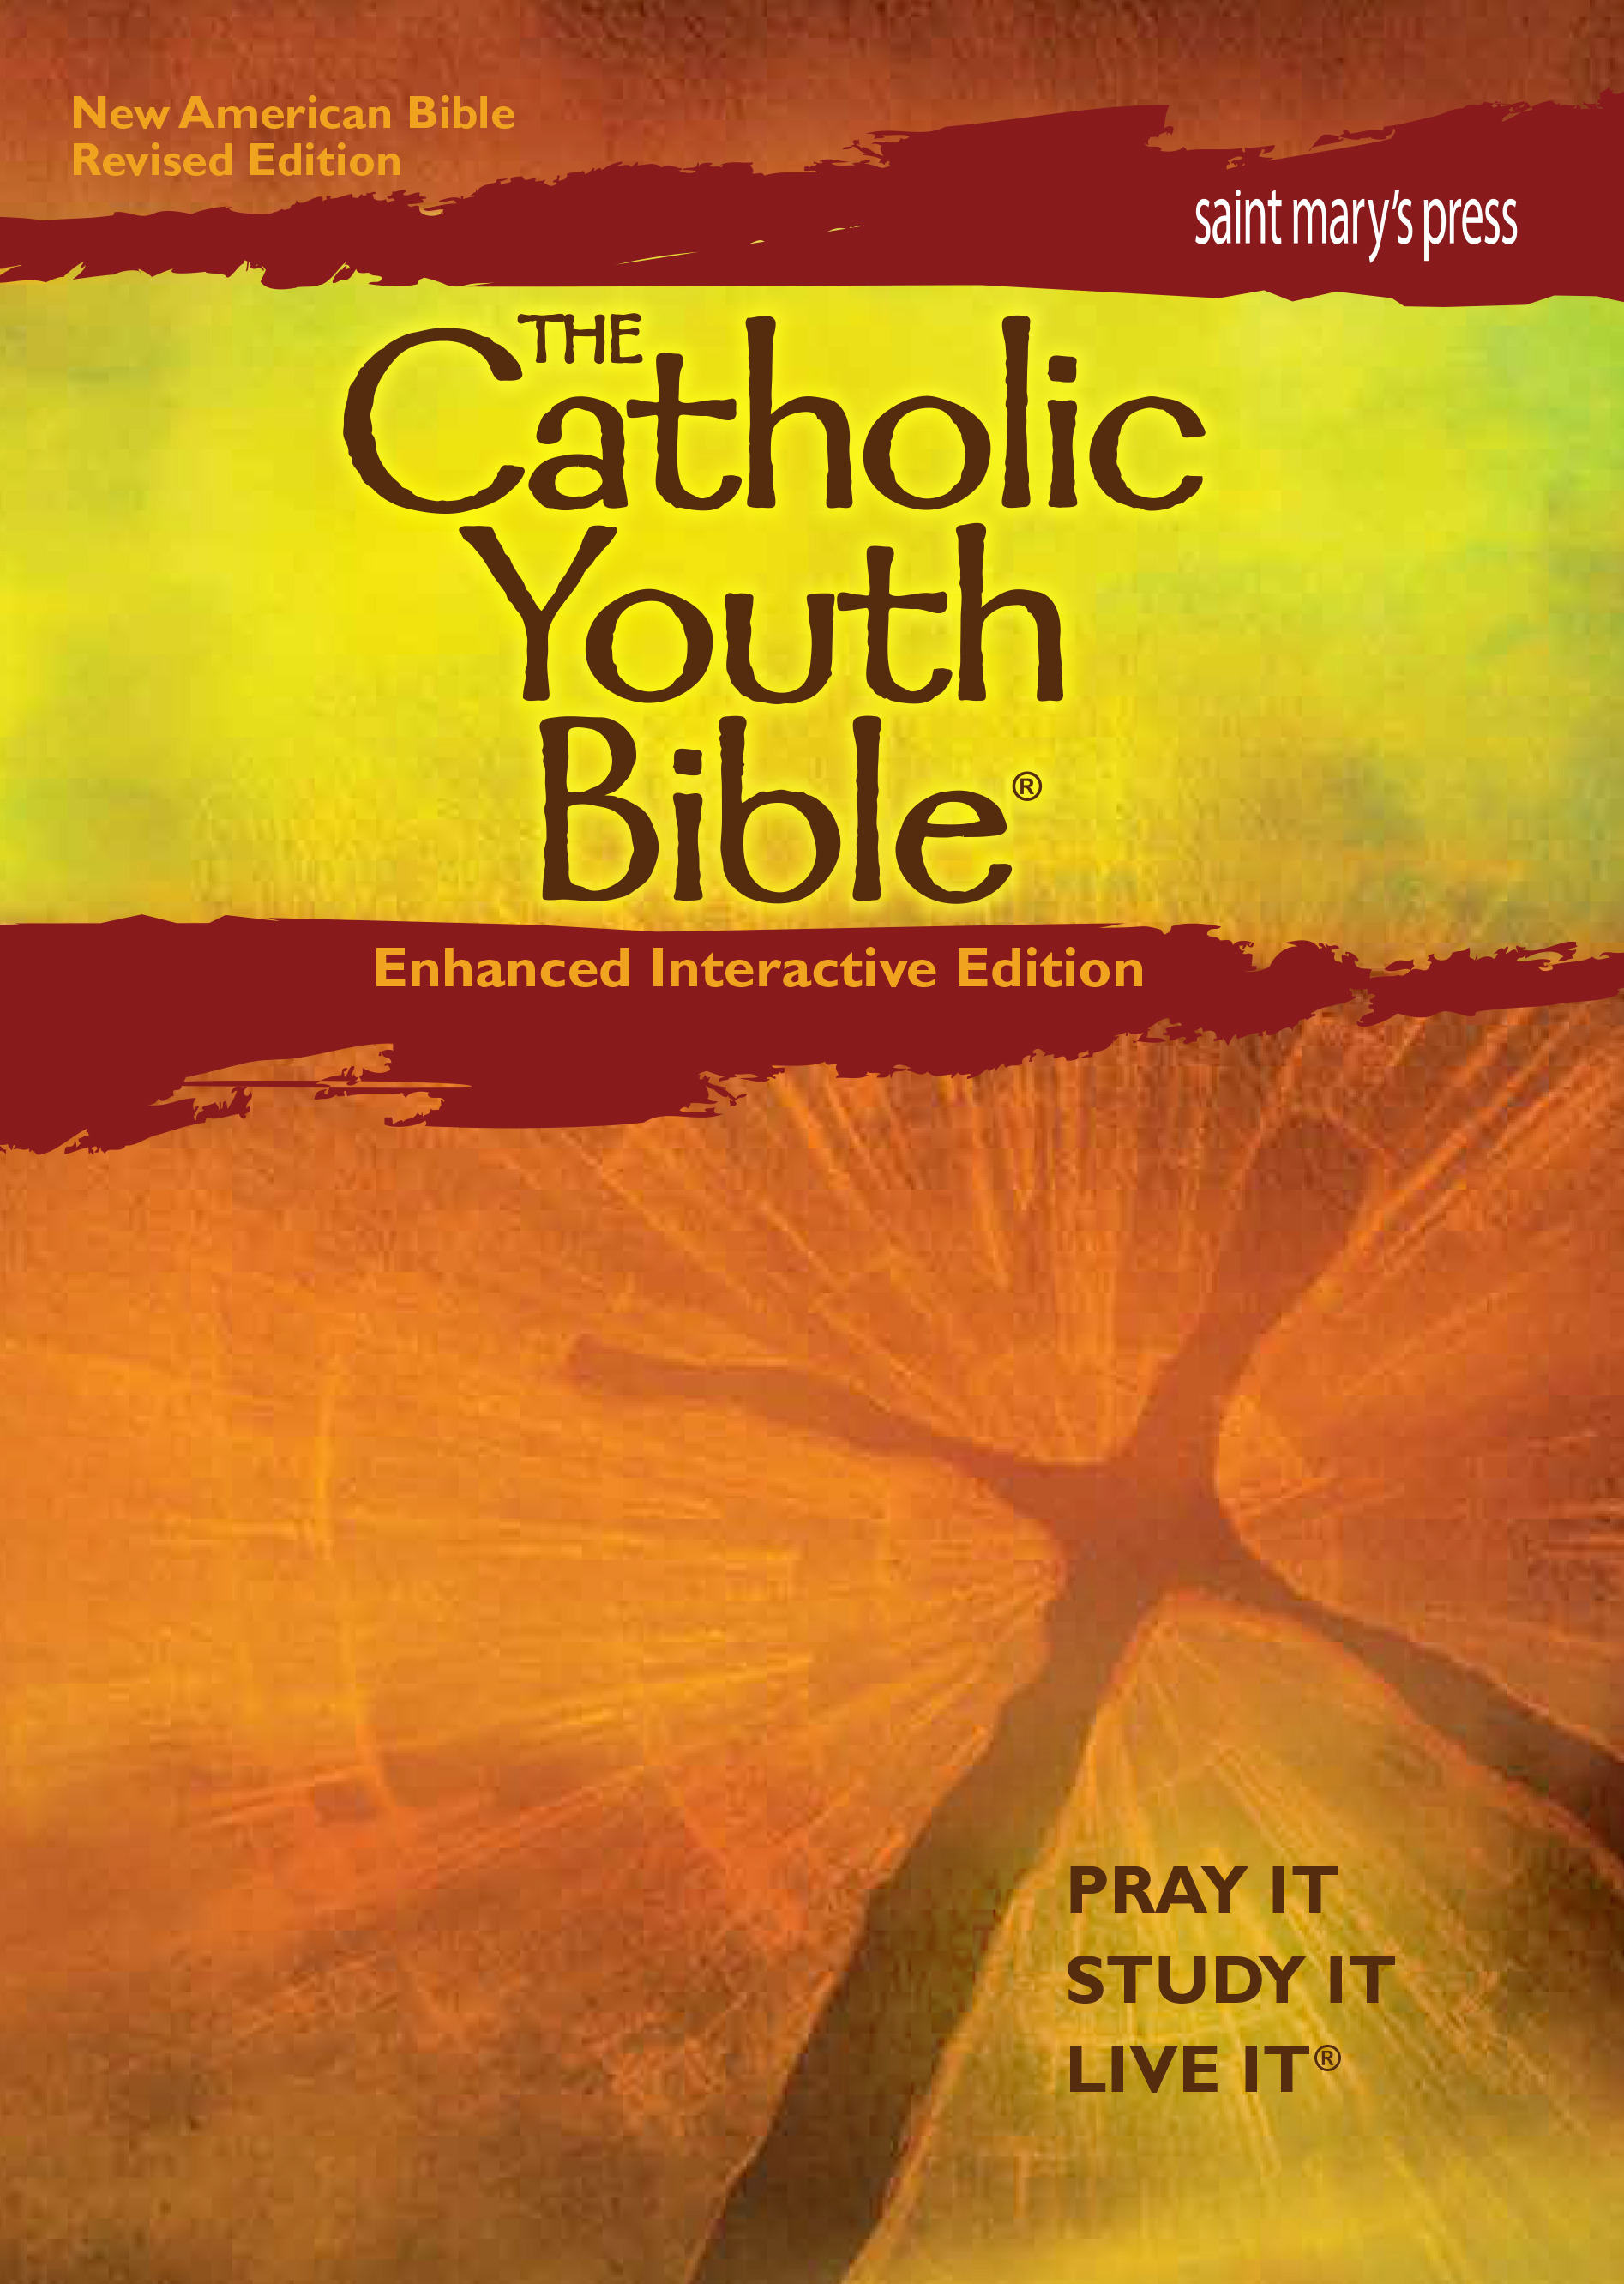 The Catholic Youth Bible, Enhanced Interactive Edition (NABRE)